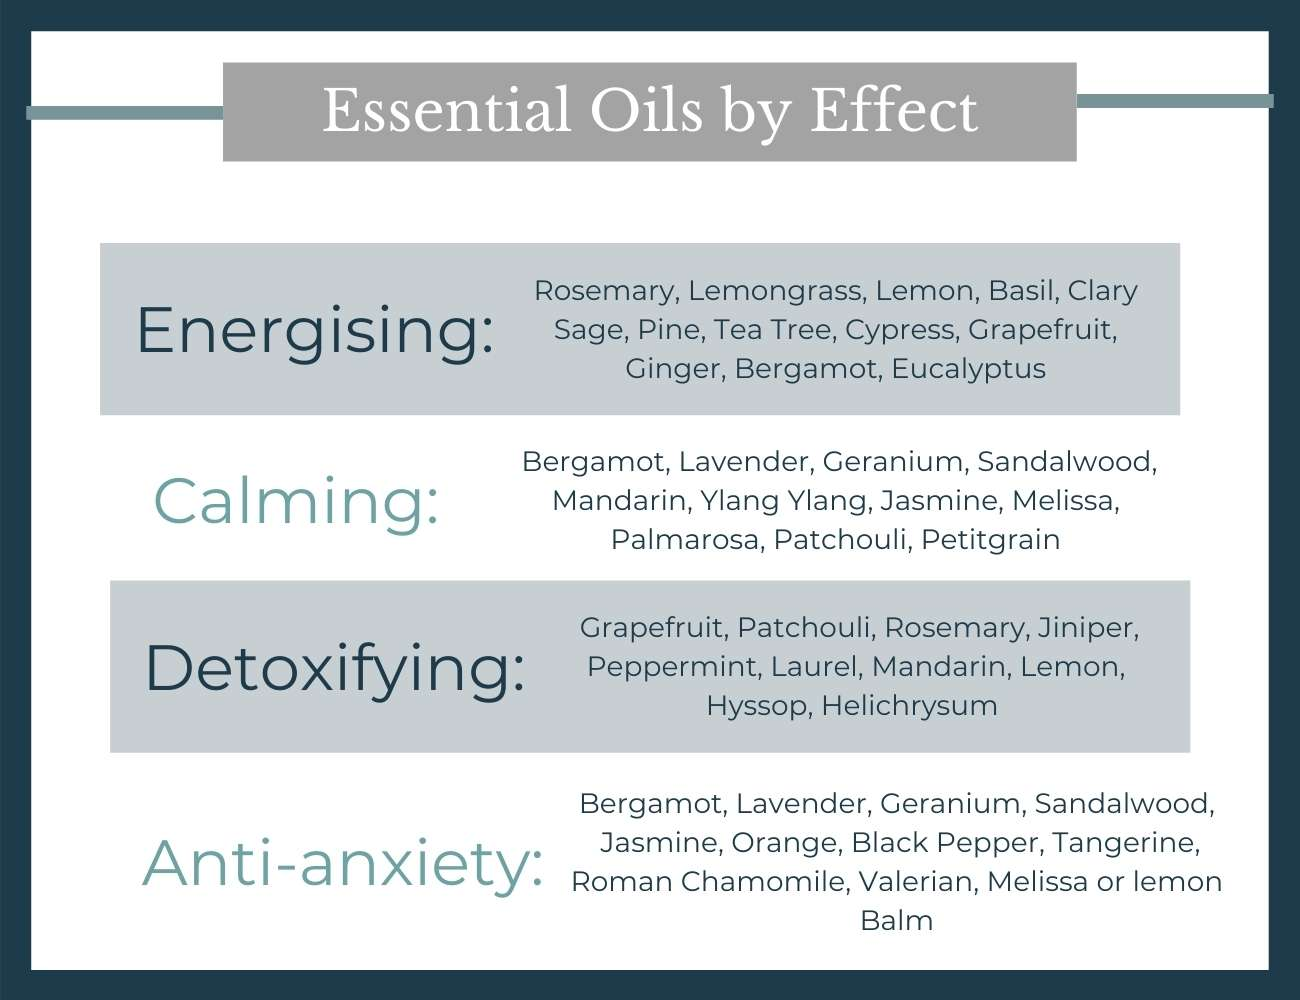 This is an image showing effects of Essential Oils.